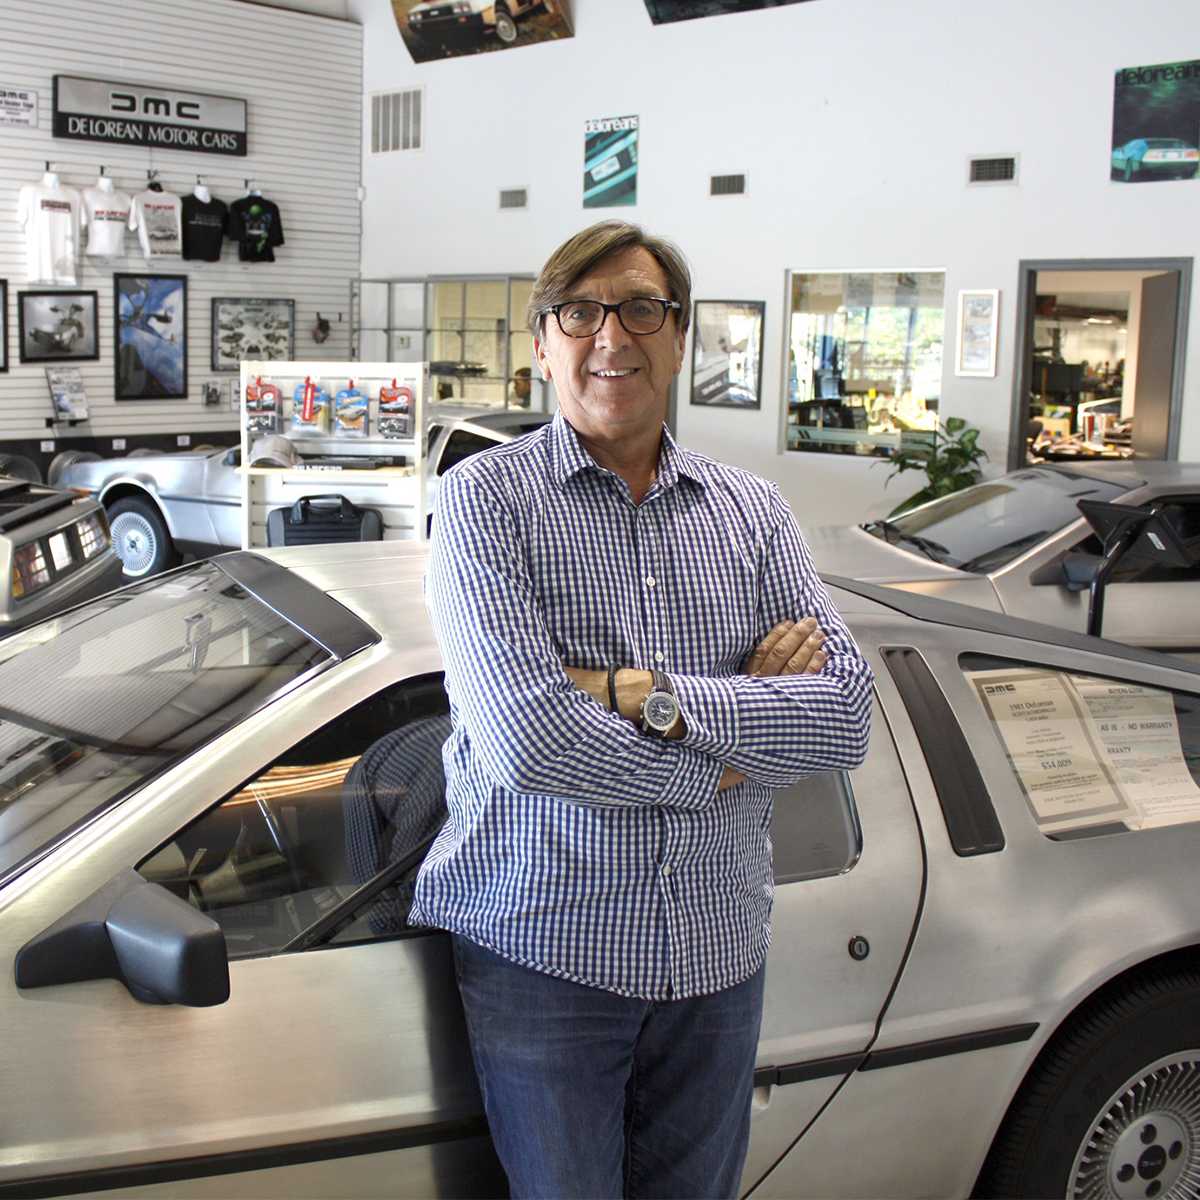 Ep. 135:  The Future of the DeLorean